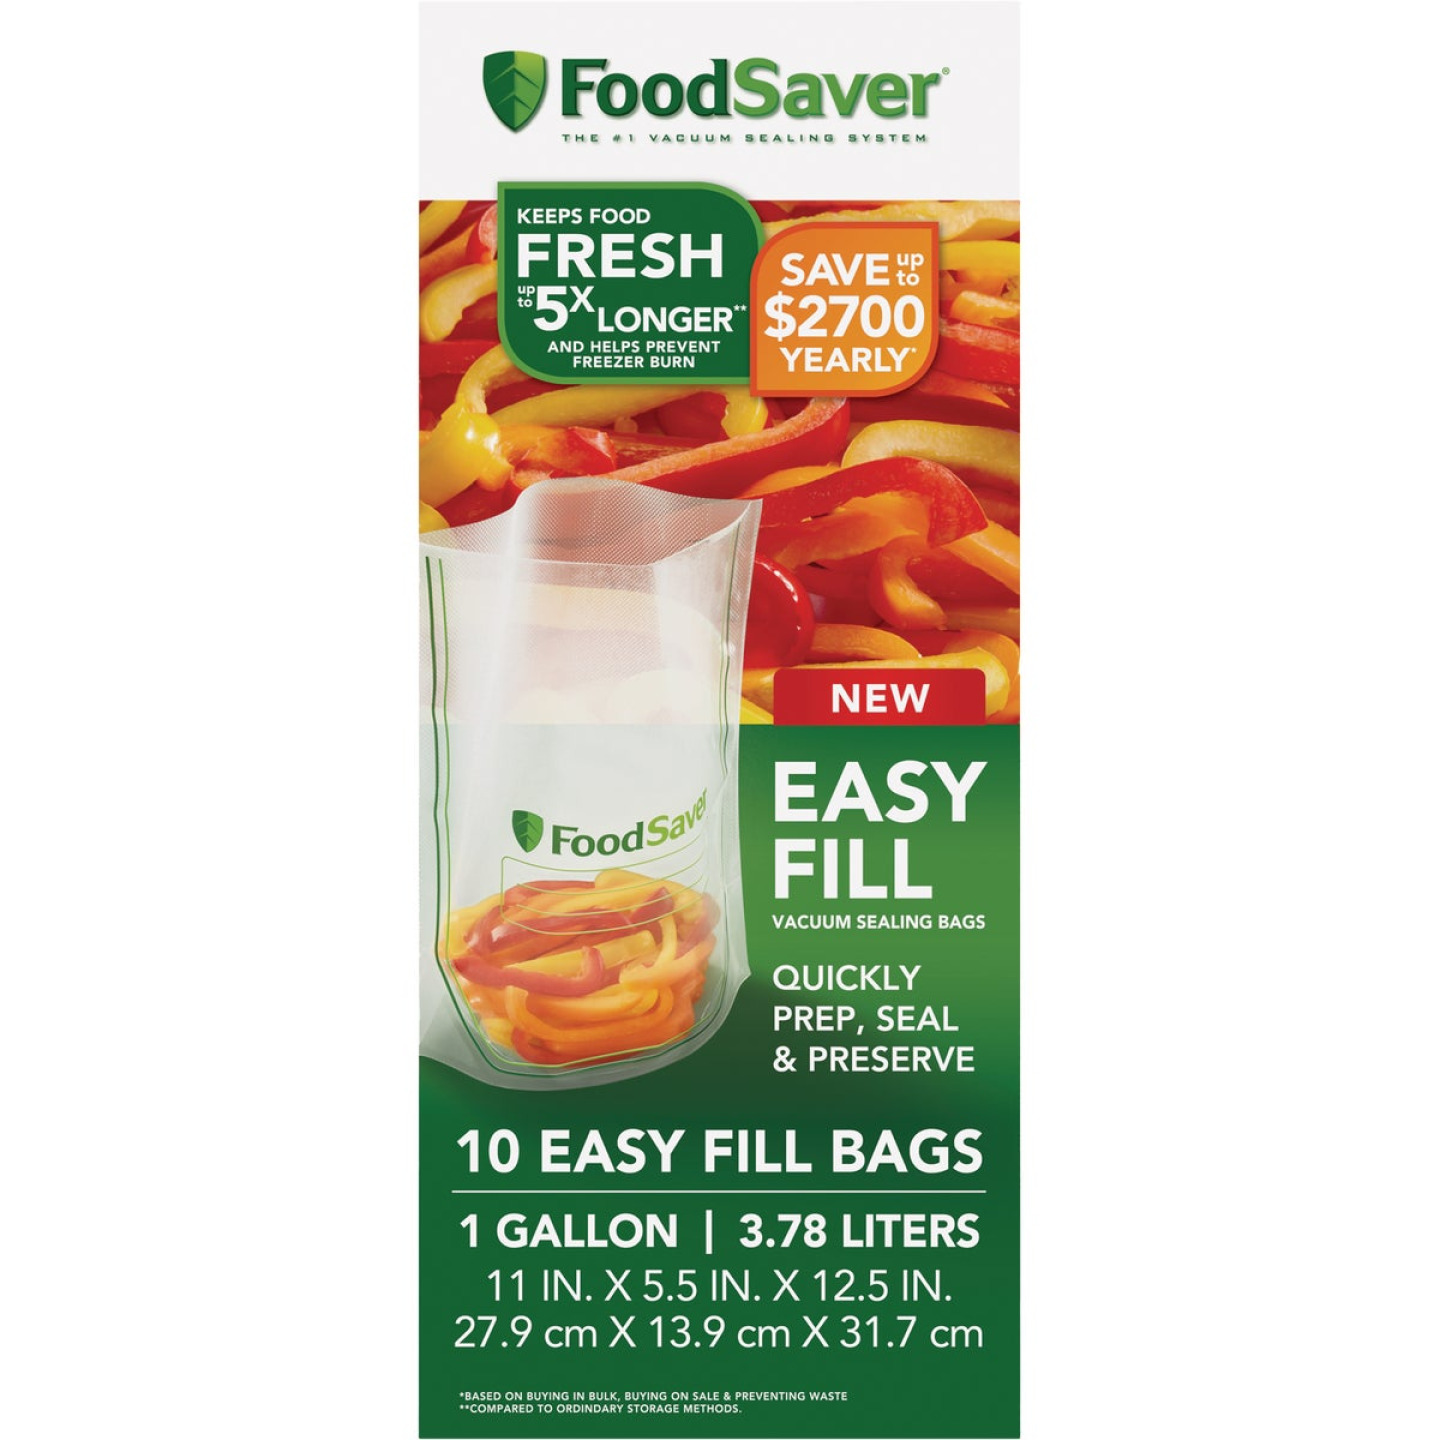 FoodSaver Easy Fill Gal. Vacuum Sealer Bags (10 Count) Image 1